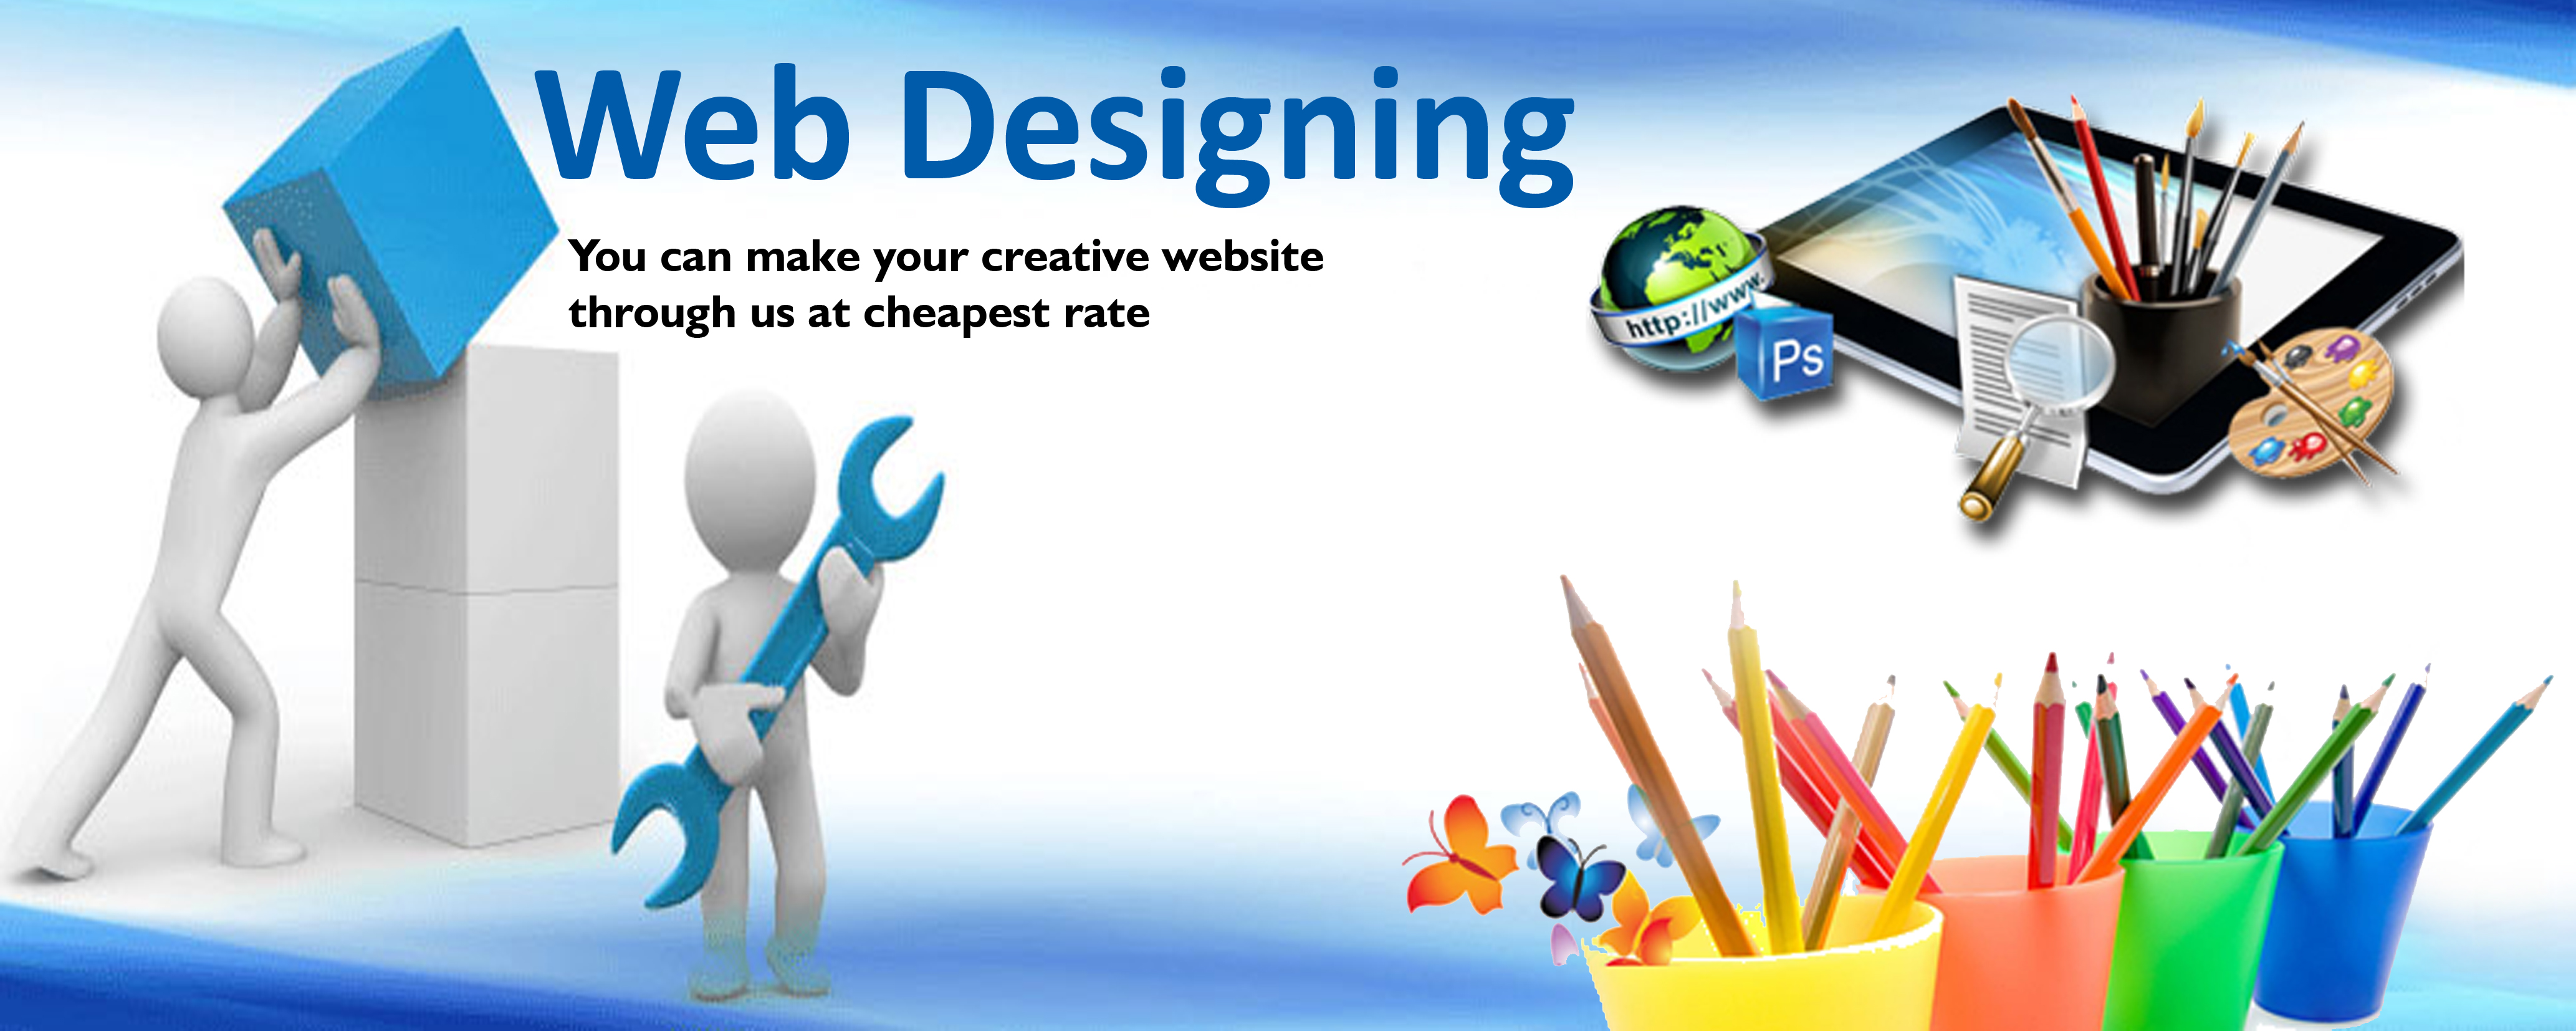 Web Development Tool Web Development In India Mobile Apps